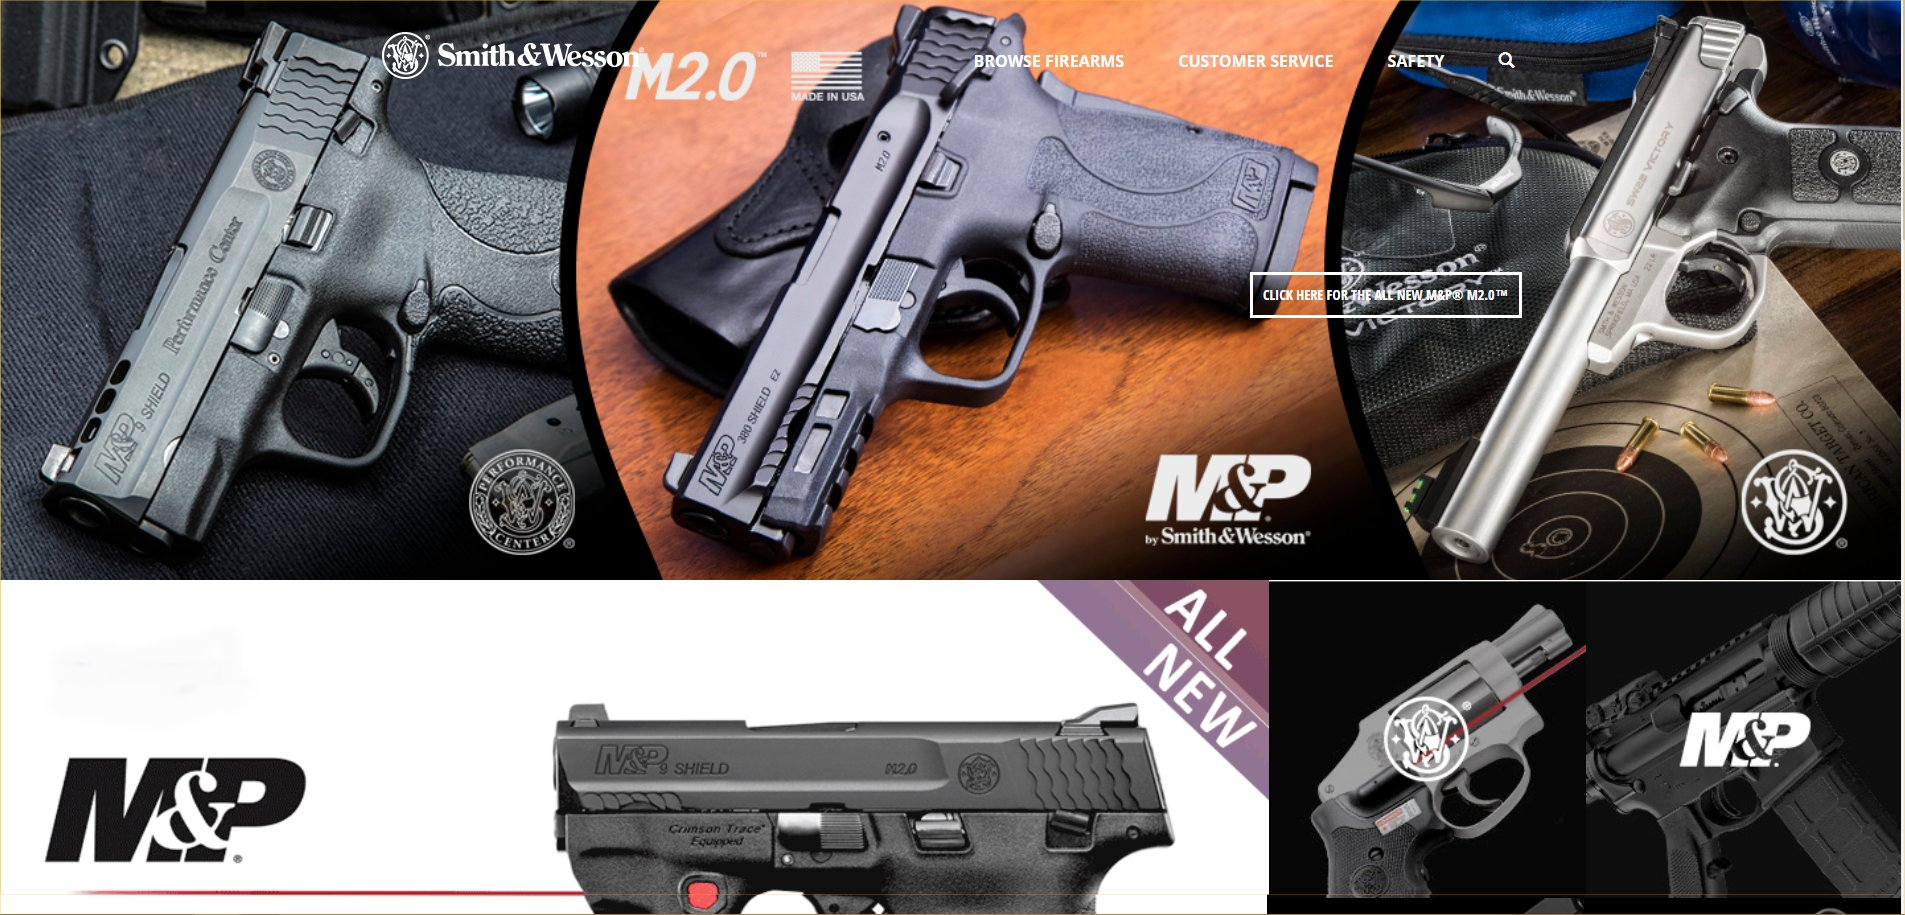 SECT 5 - SMITH & WESSON HANDGUNS